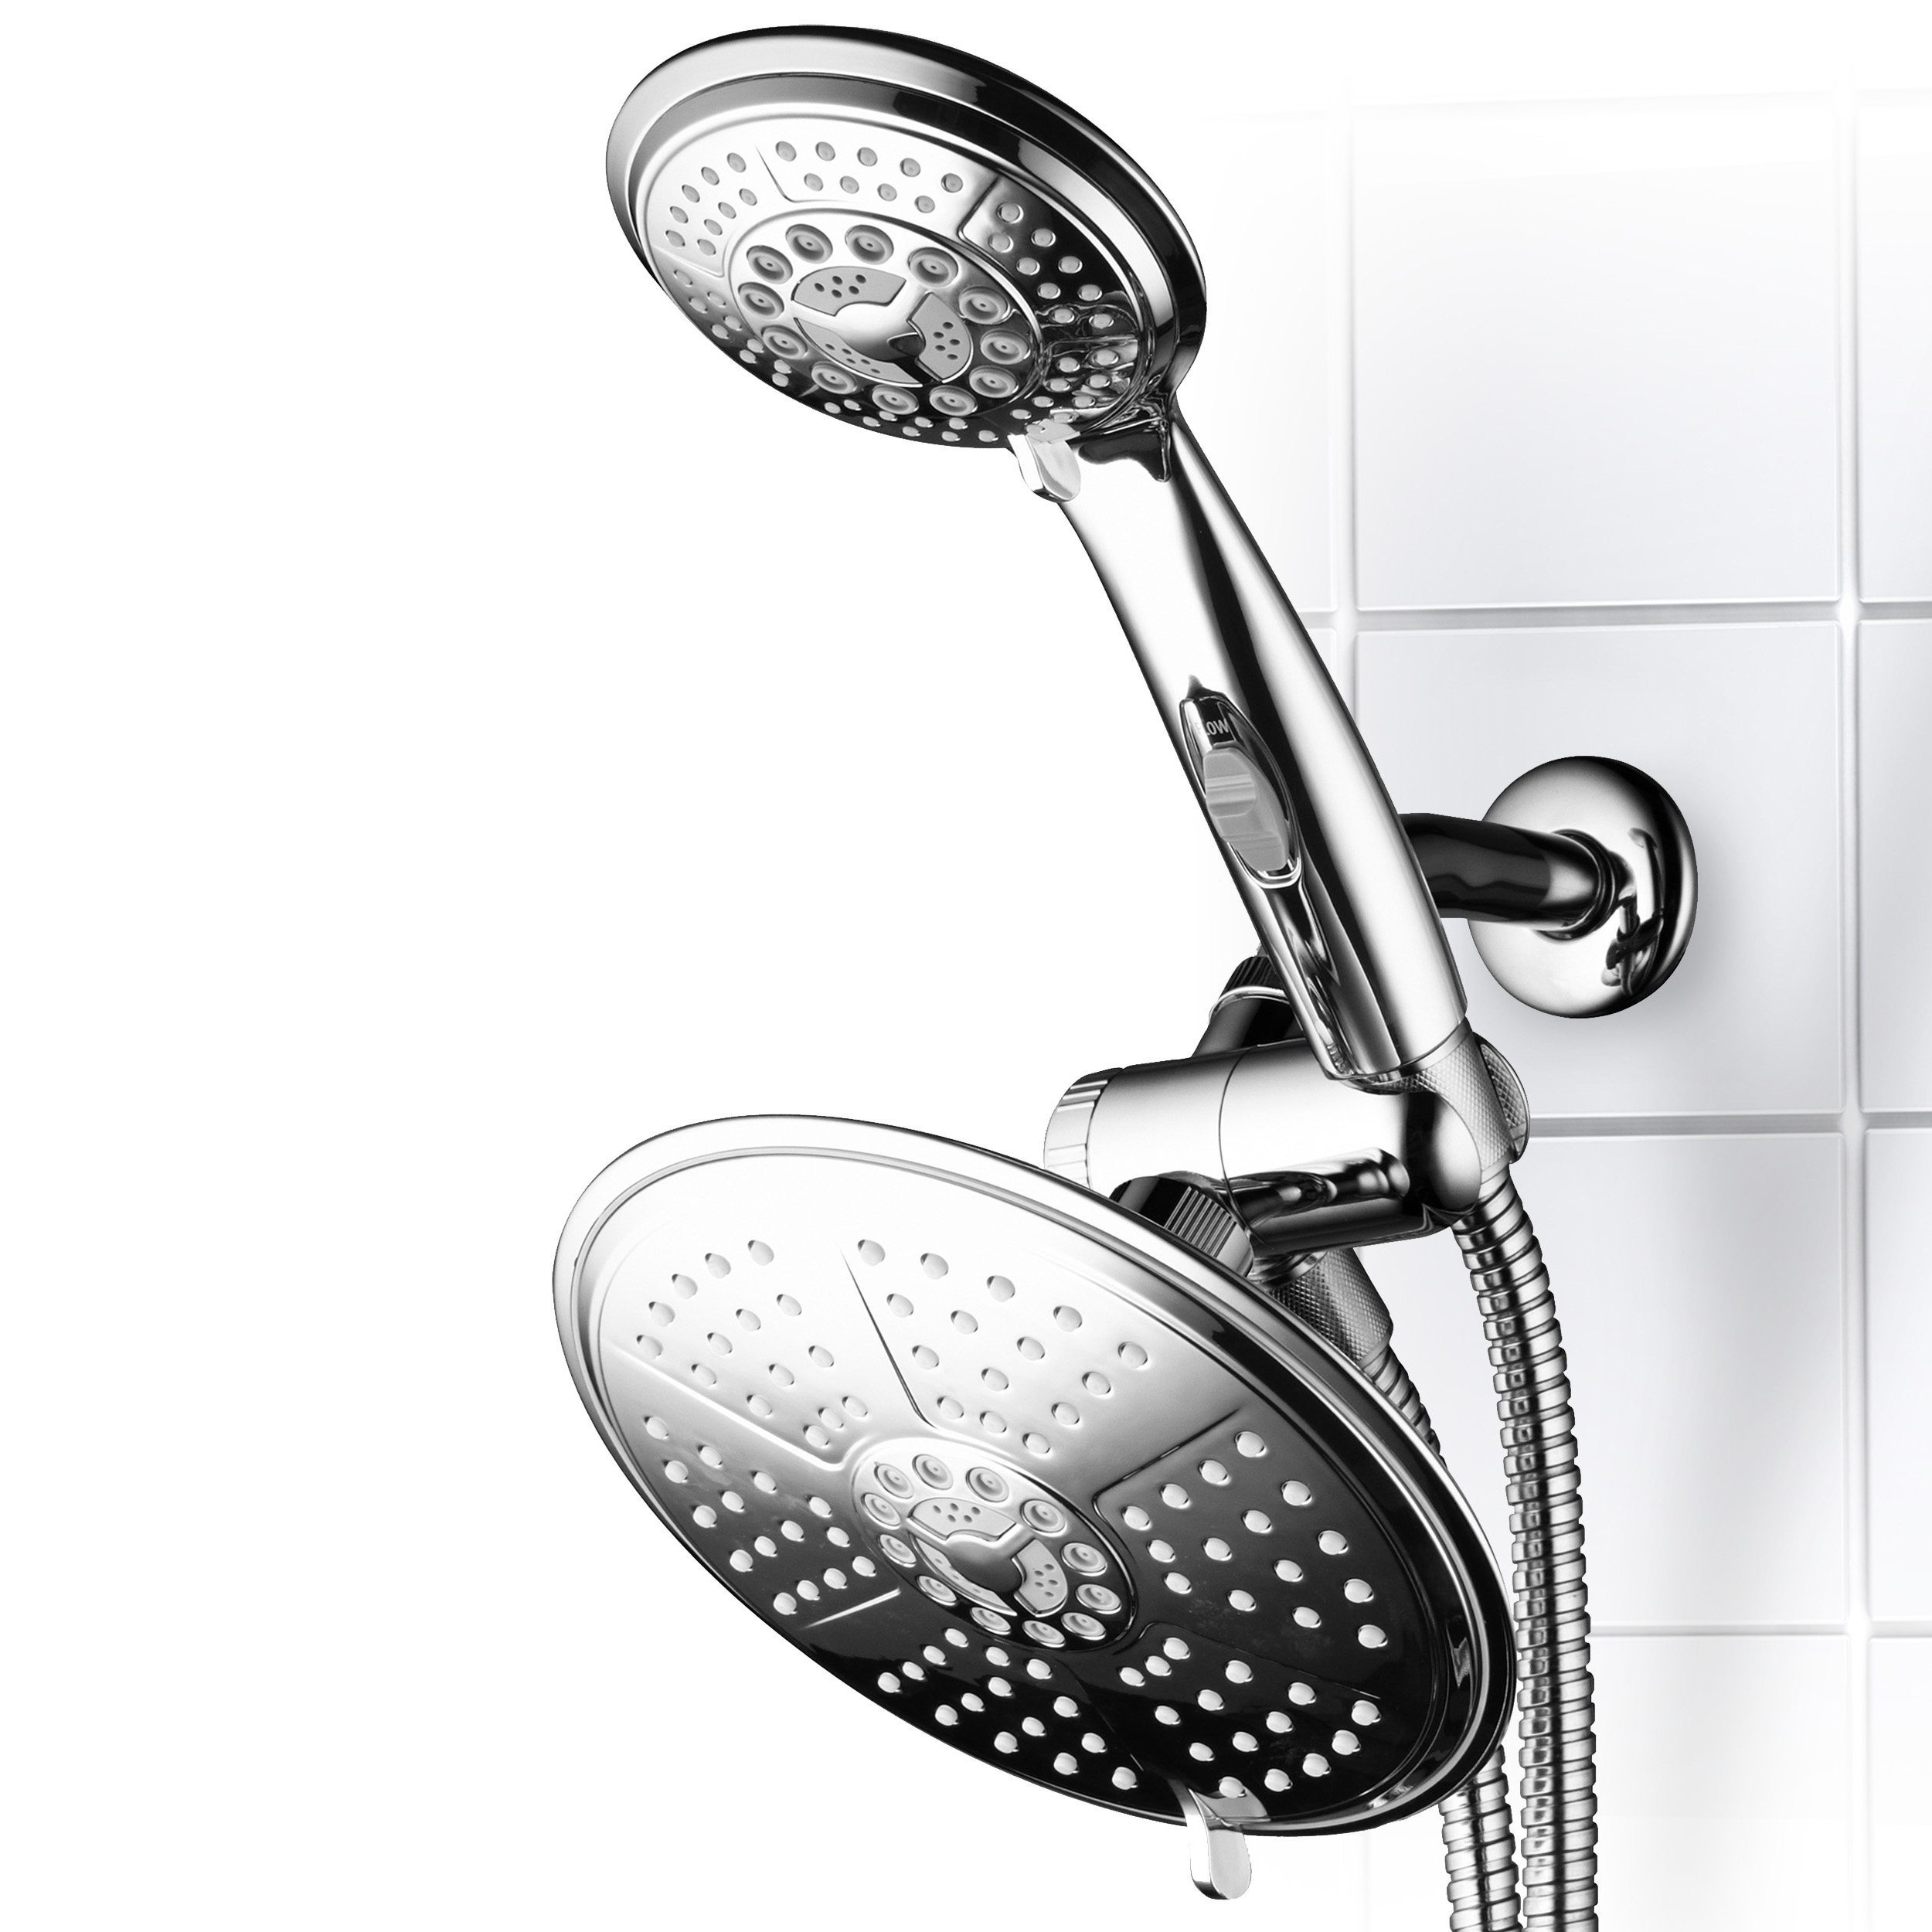 DreamSpa 3-Way Rainfall Combo with Patented ON/OFF Pause Switch